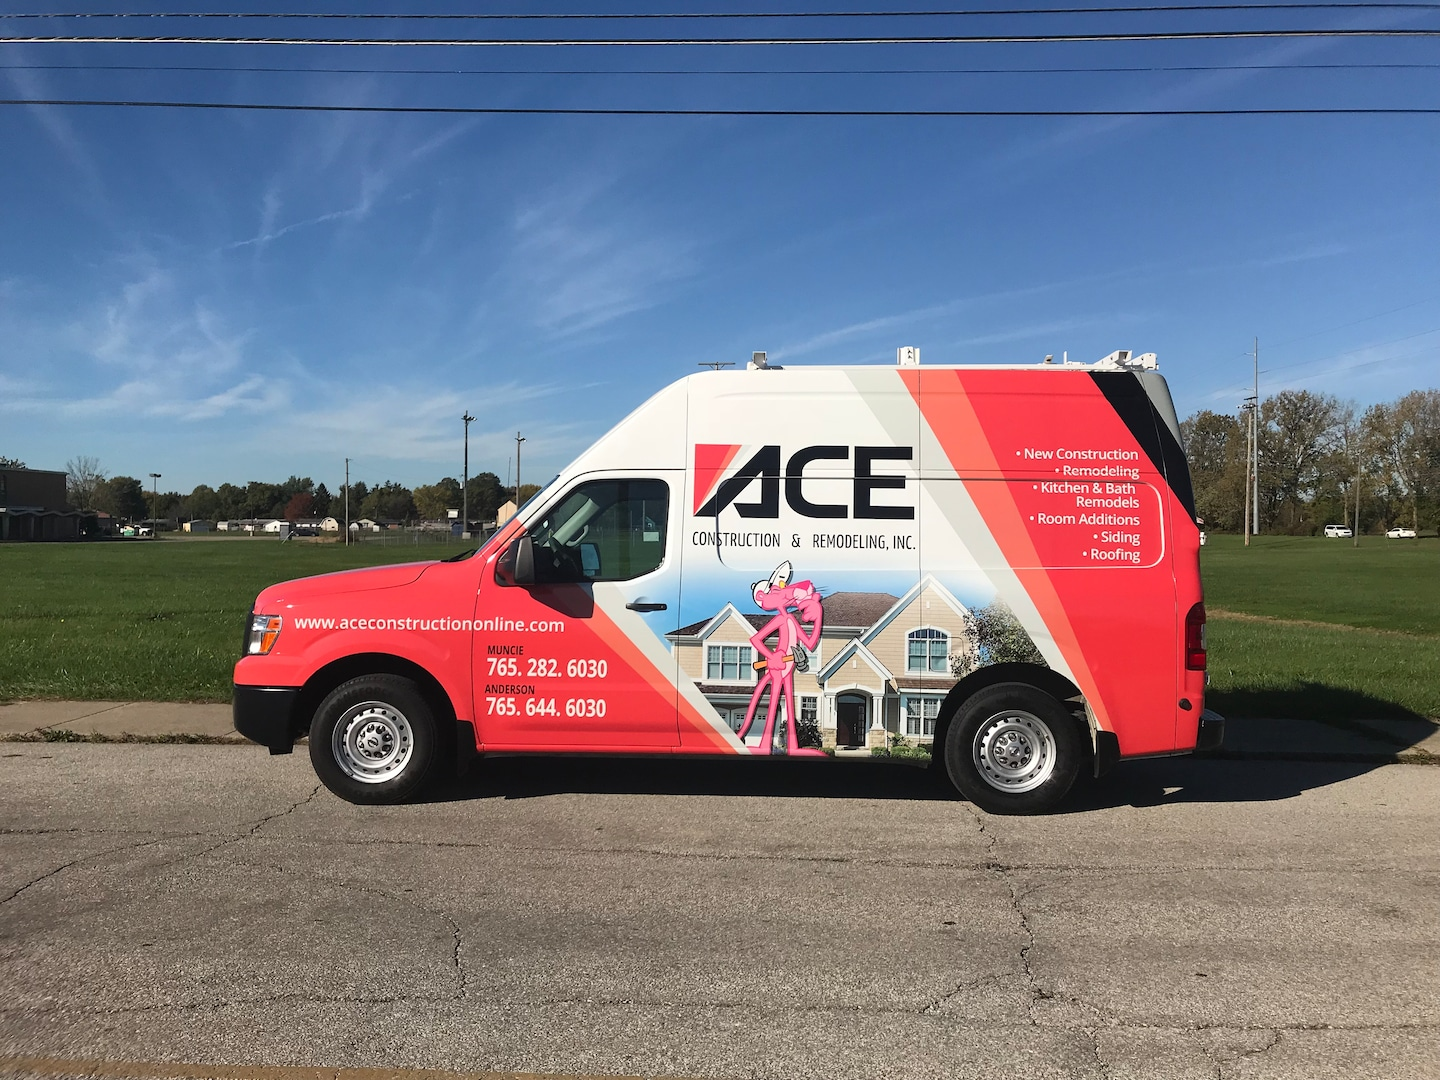 ACE Construction & Remodeling Inc